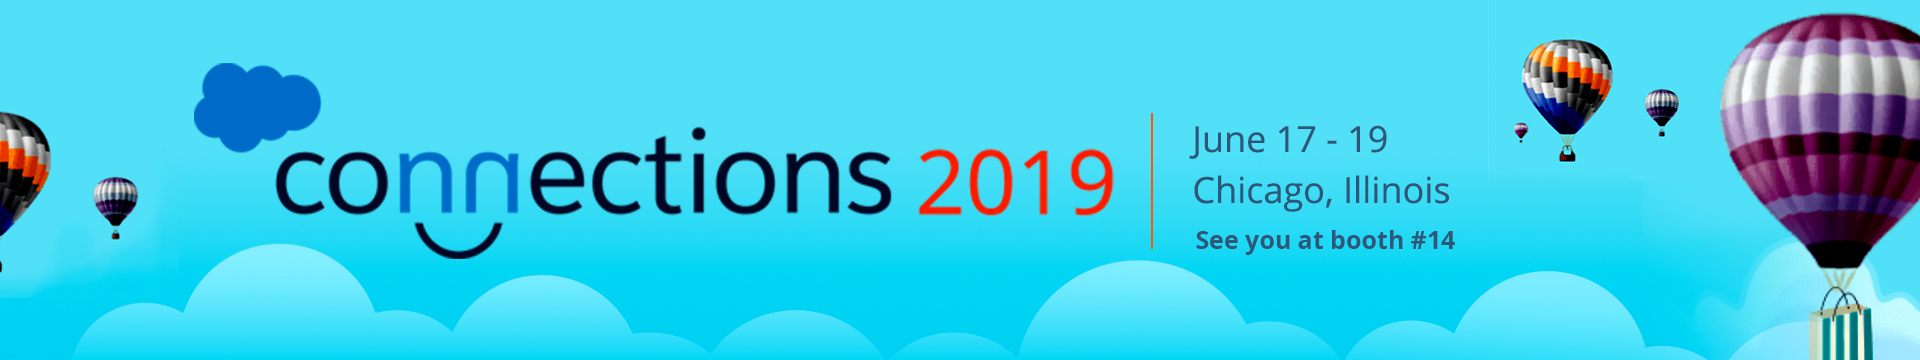 Salesforce Connection 2019